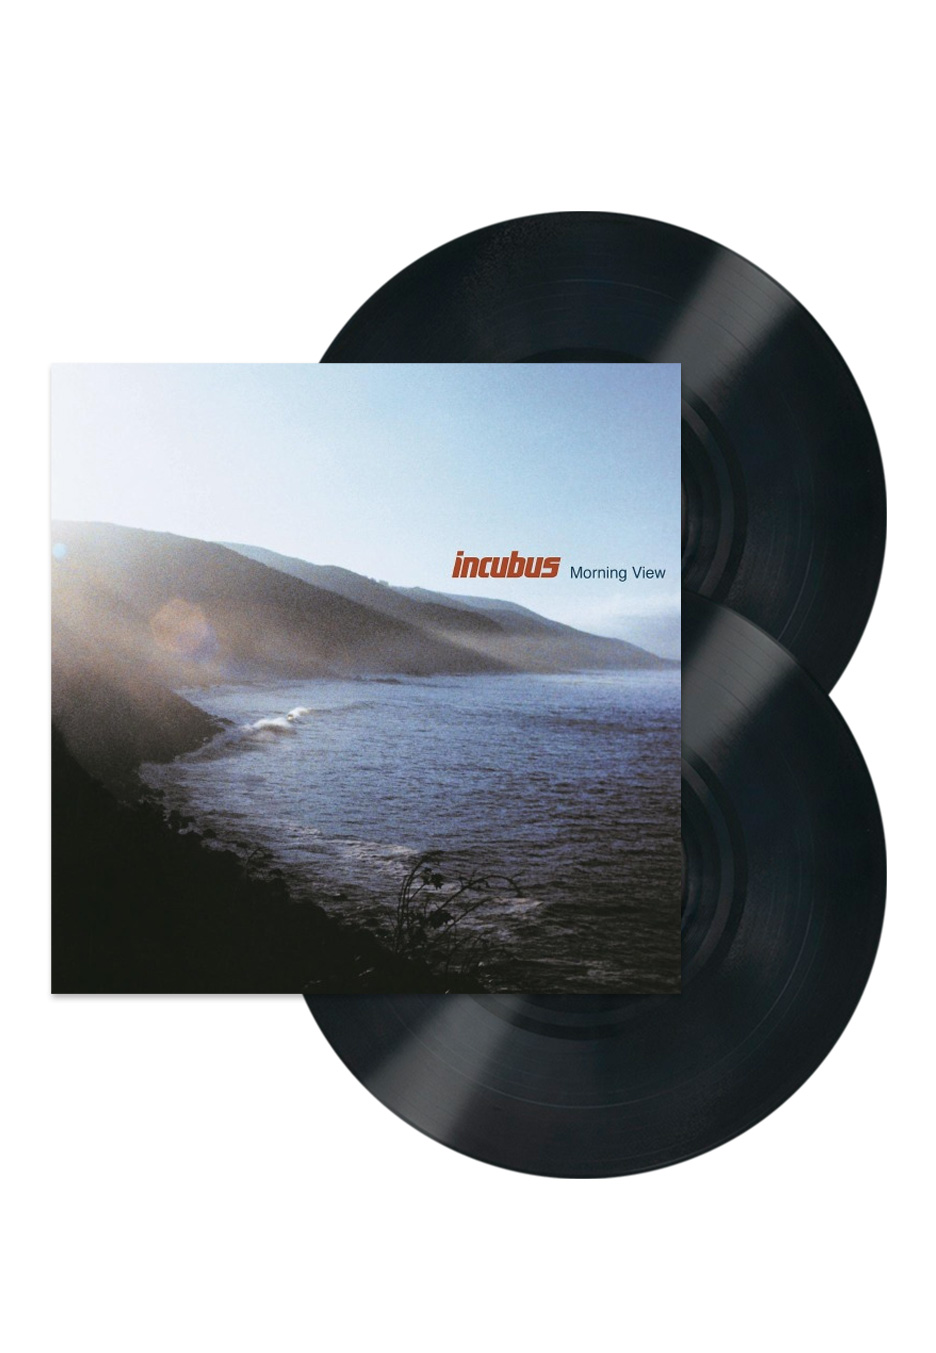 Incubus - Morning View - Vinyl